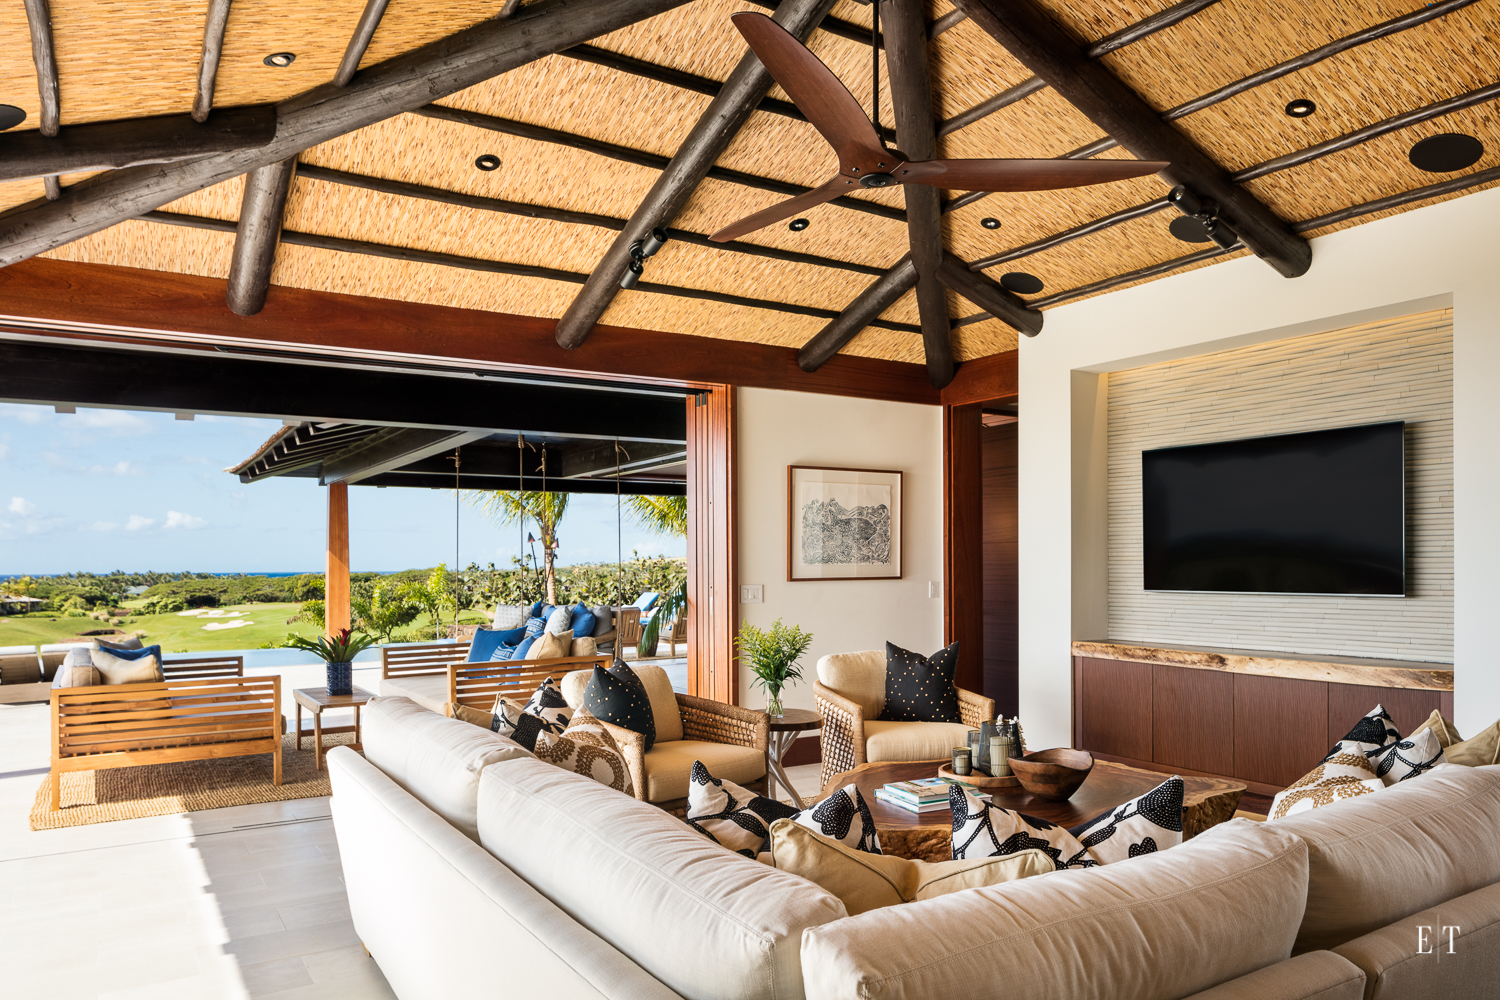 Indoor Outdoor living at its finest at Hale Kahakai, Kukui'ula on the South Shore of Kauai - Pu'uwai Design + Build